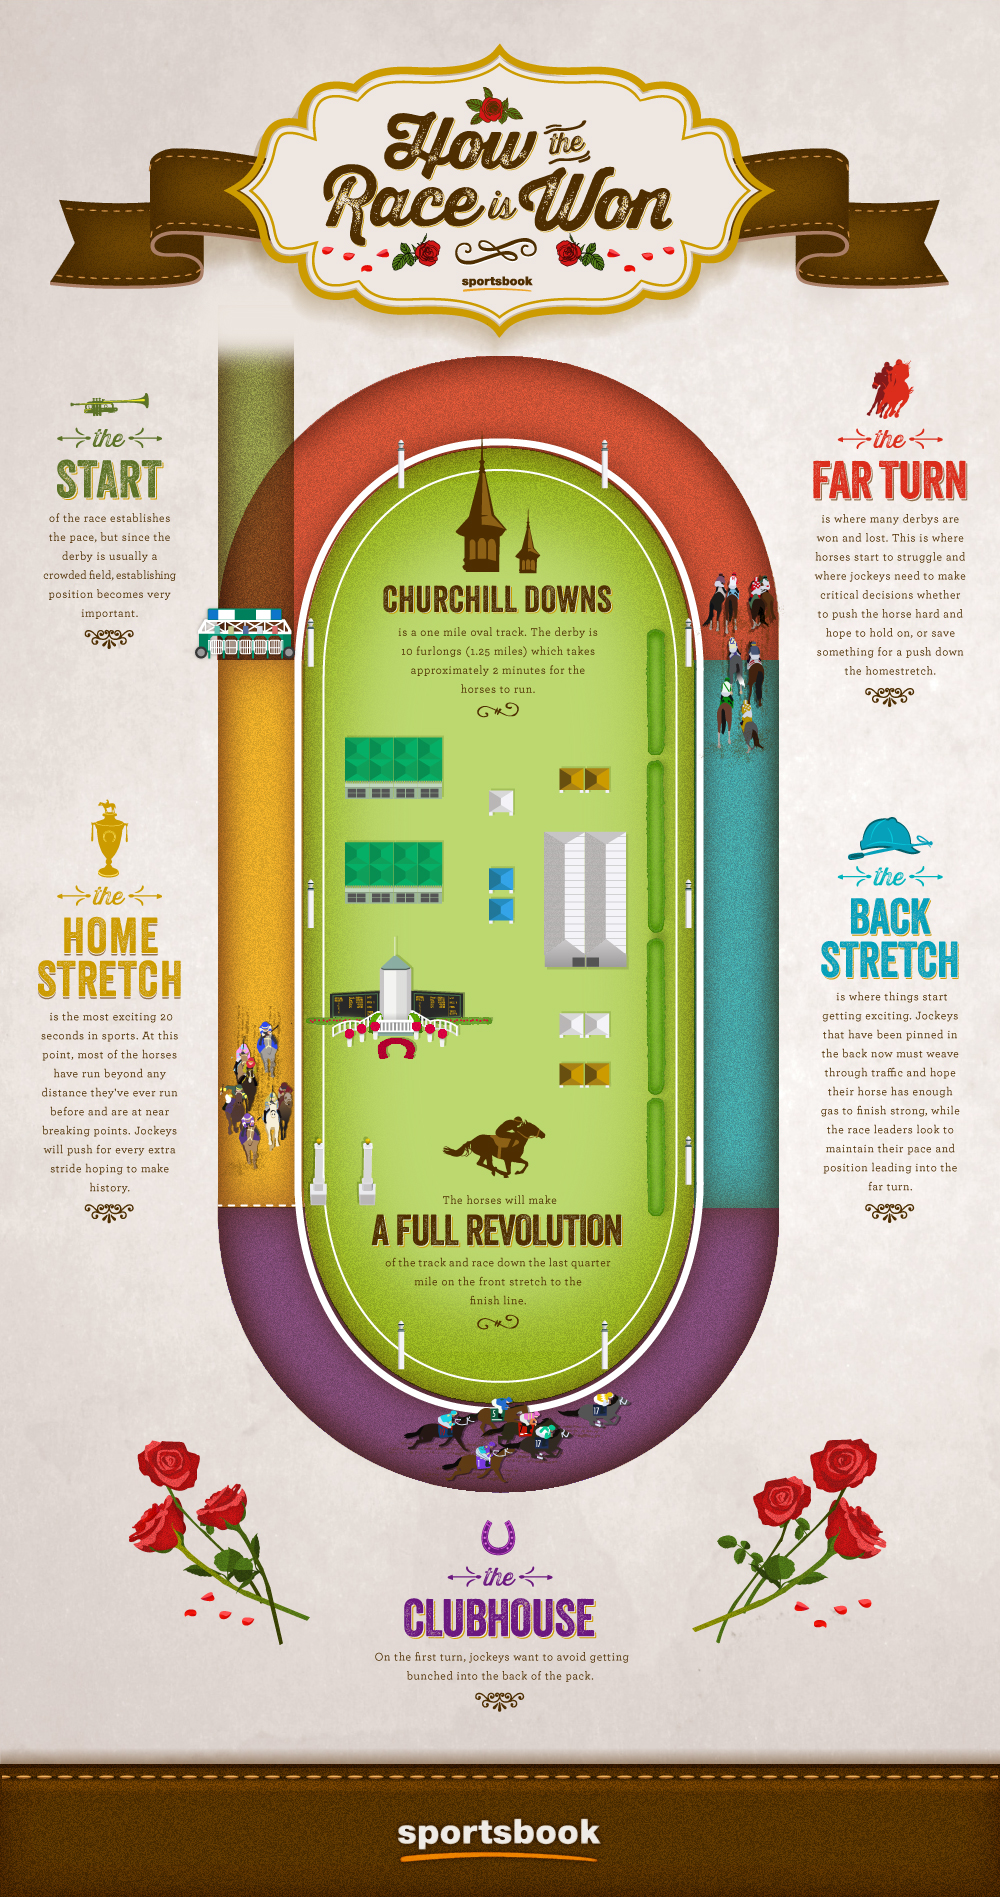 KENTUCKY DERBY INFO - HOW THE RACE IS WON